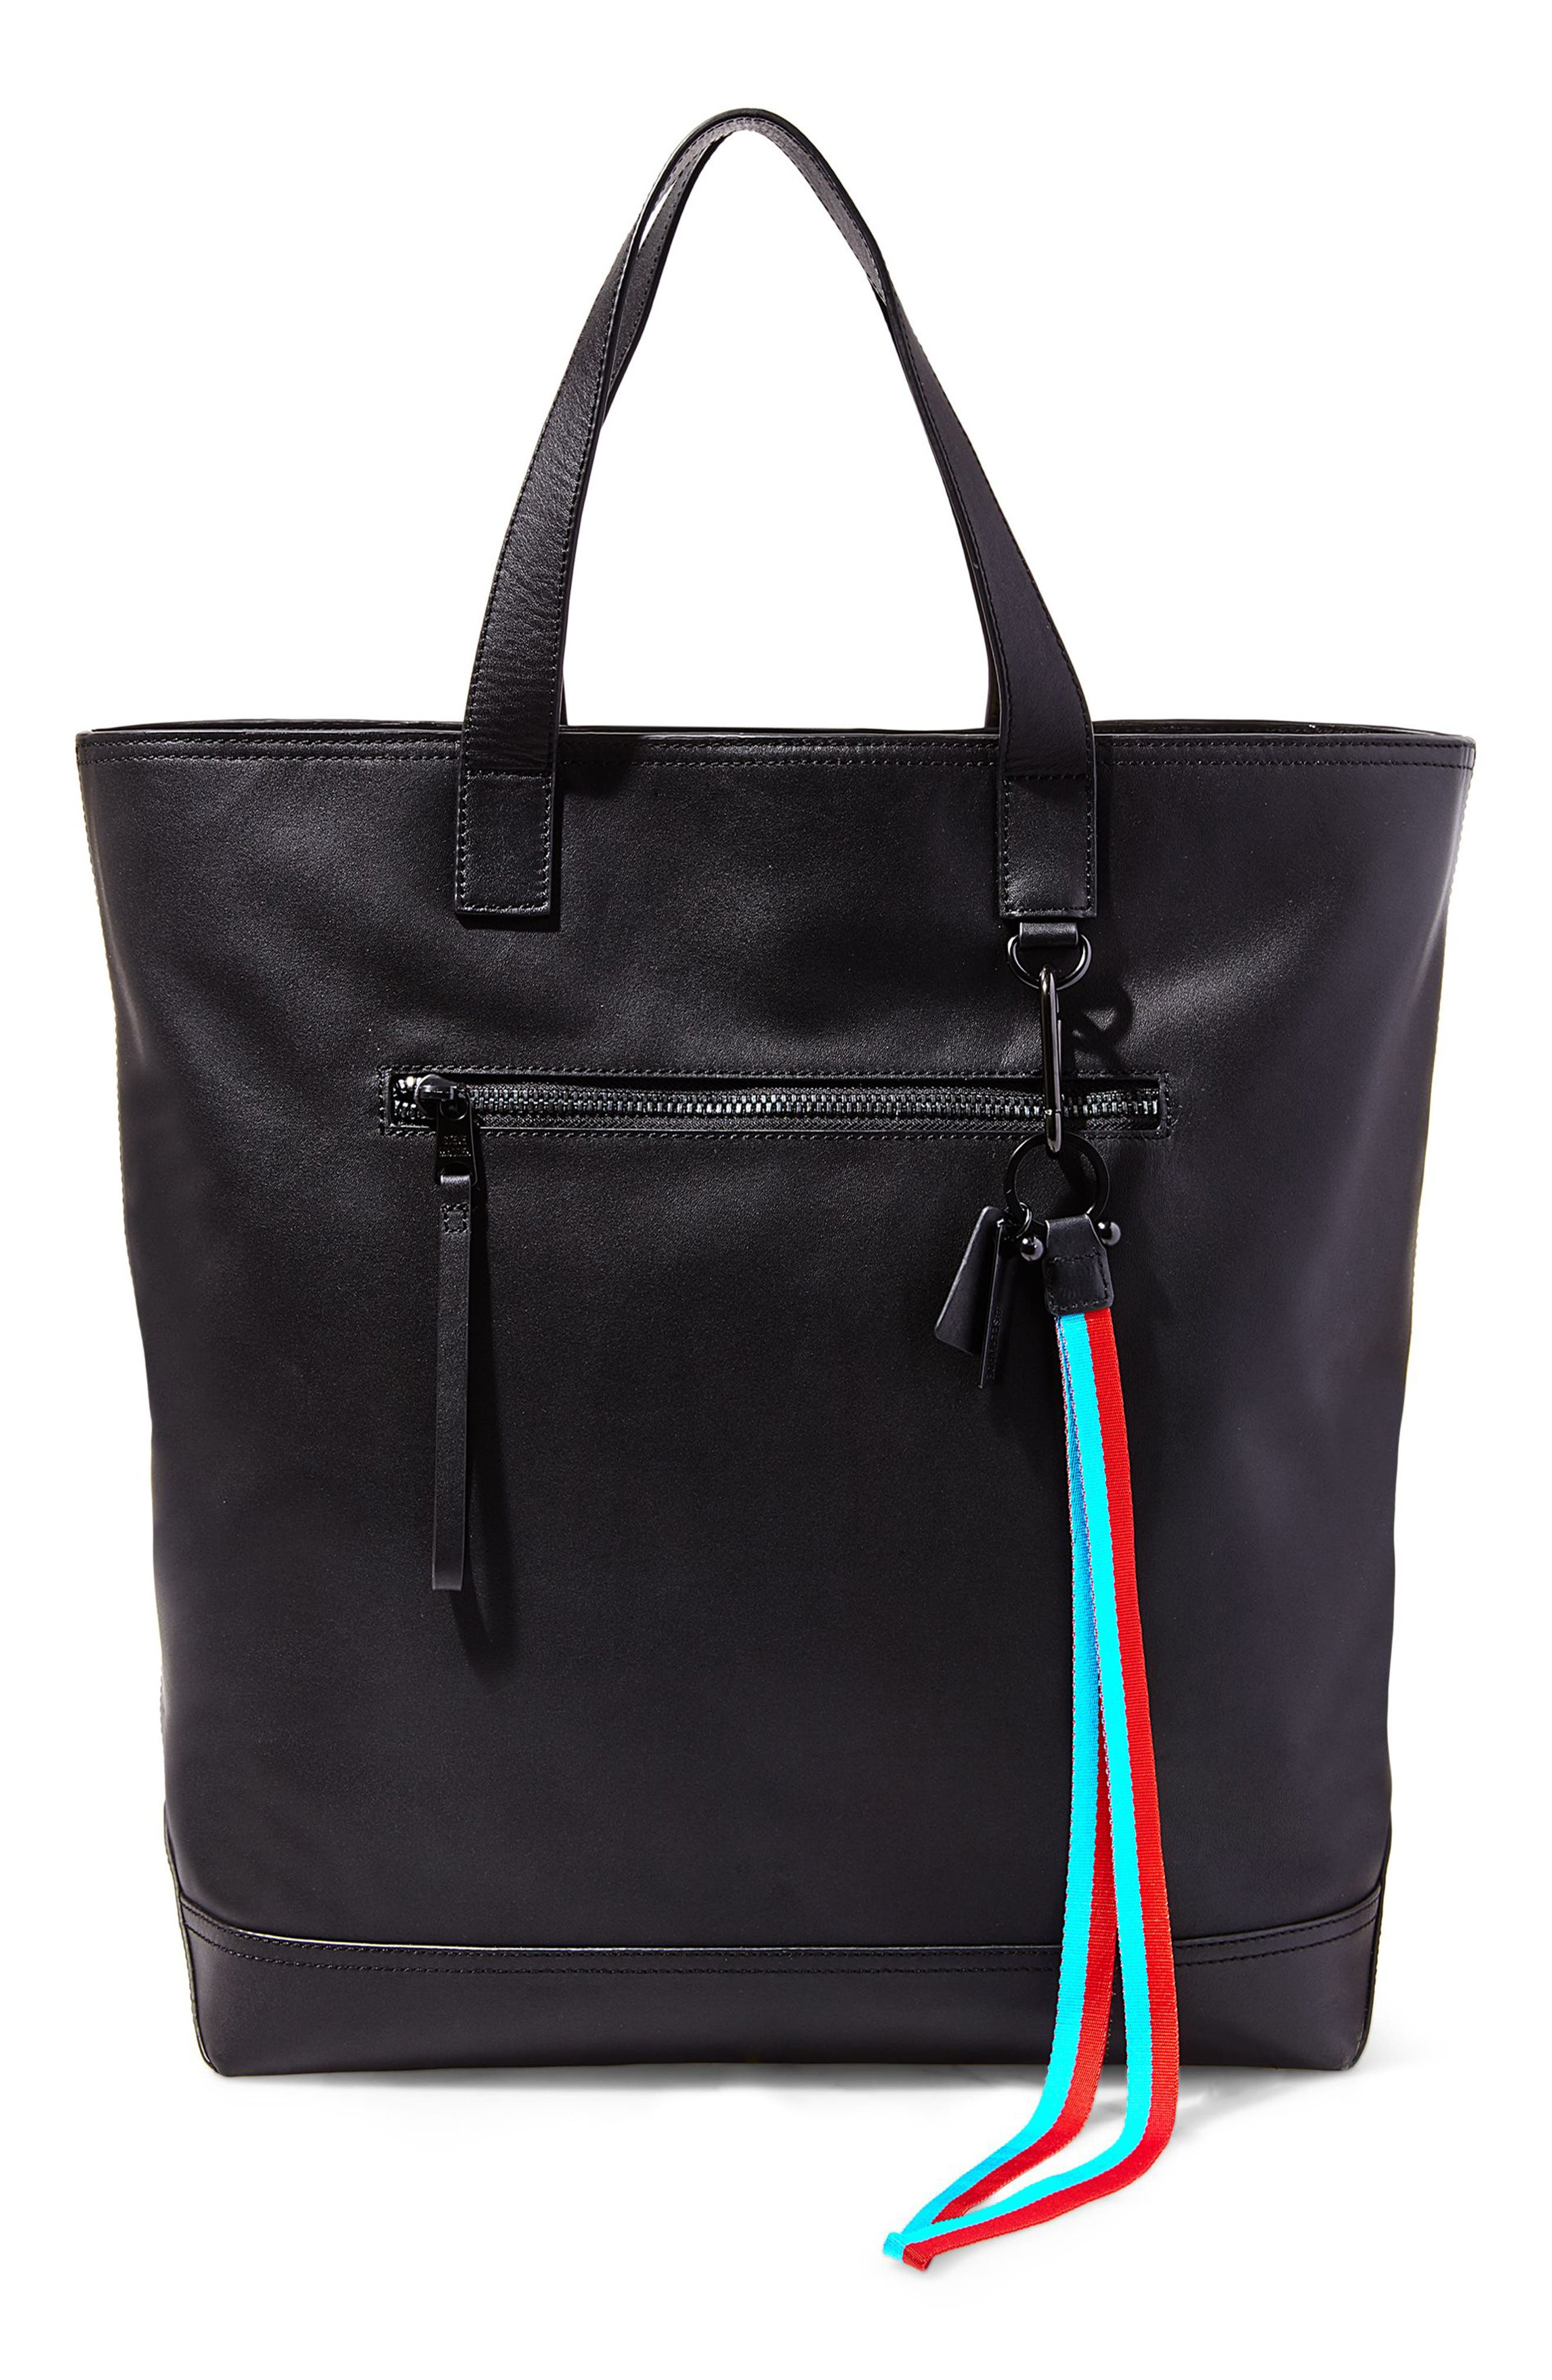 GQ x Steve Madden Leather Tote Bag,                             Main thumbnail 1, color,